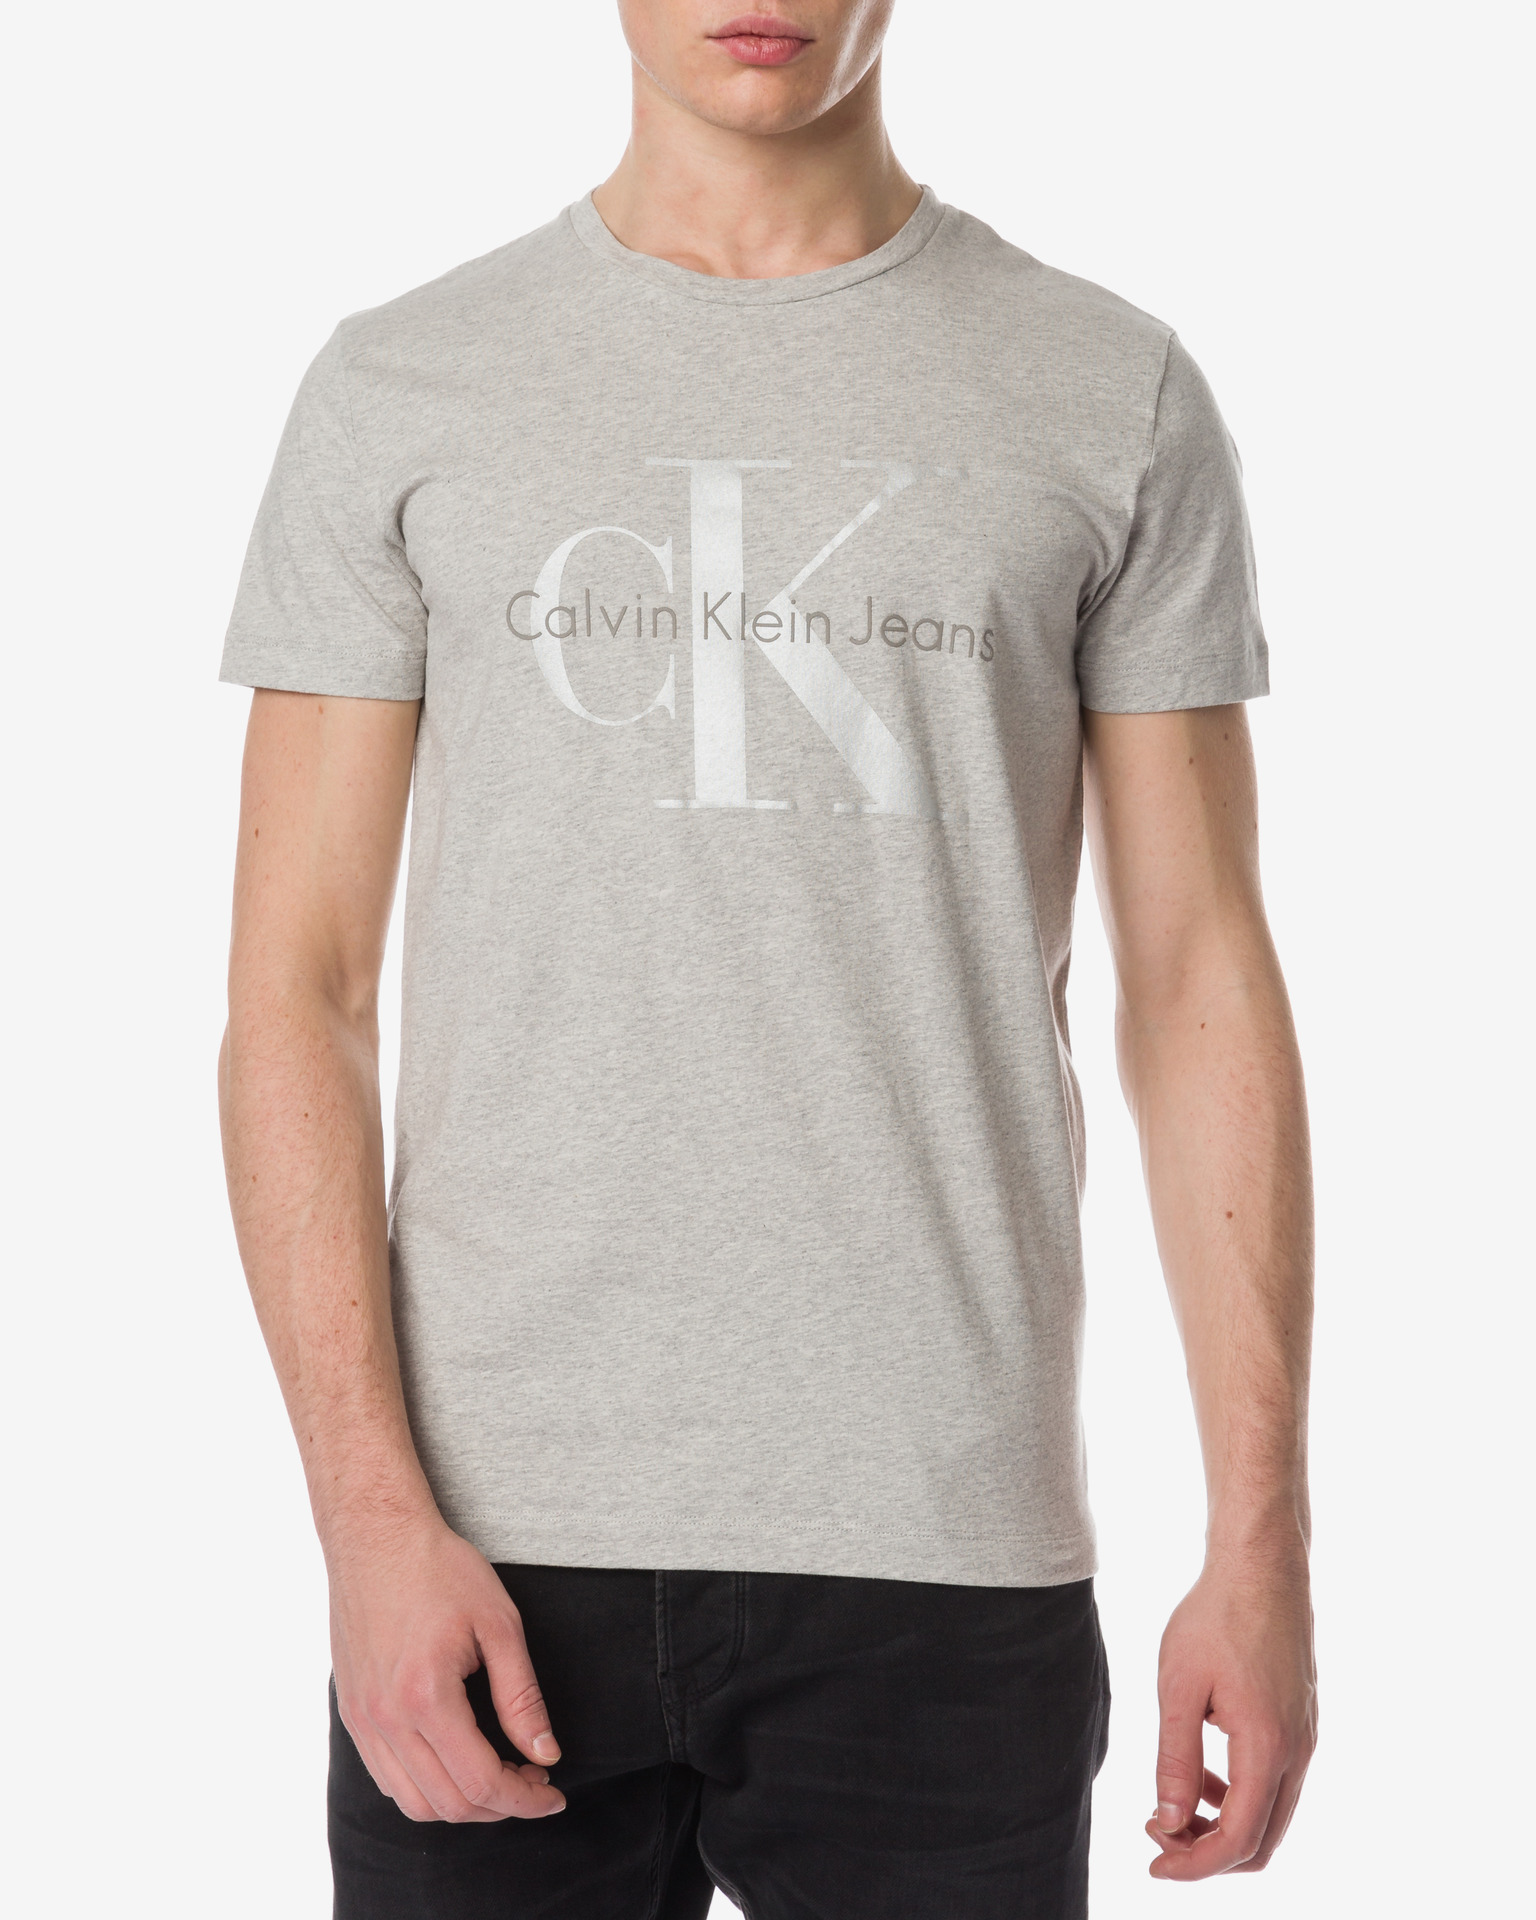 calvin klein t shirt. Black Bedroom Furniture Sets. Home Design Ideas